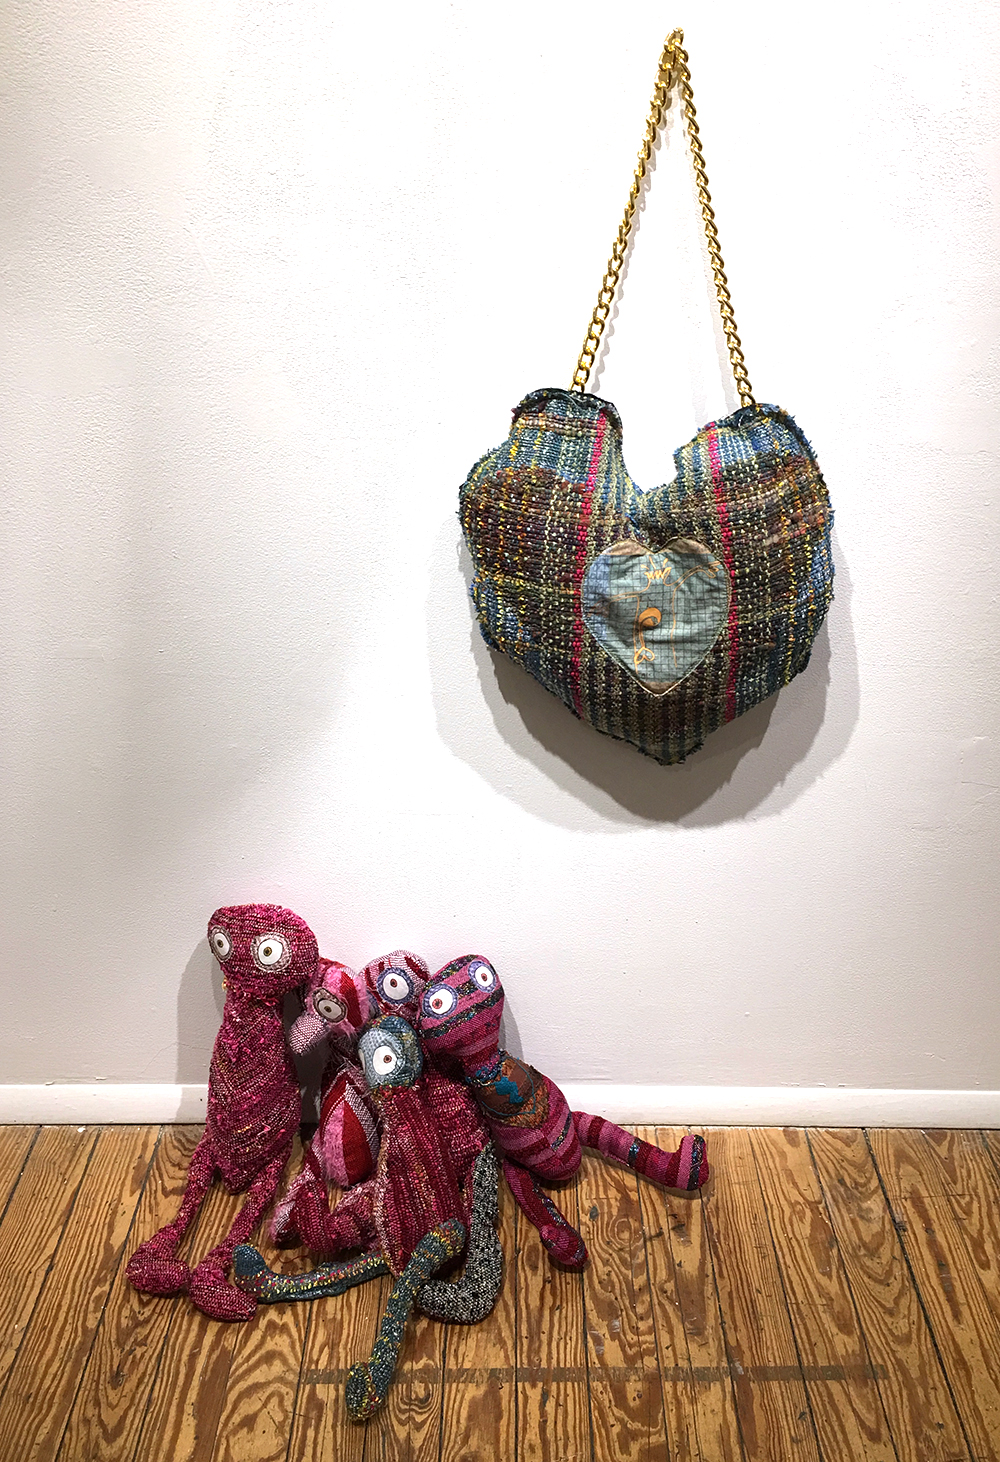 "Just Send Flowers (left)  h: 17"" x w: 20"" x d: 8"" hand-woven and machine-made fabric, embroidery, inkjet prints, fleece 2017   Blow My Brains Out  h: 17"" x w: 13"" hand-woven and machine-made fabric, embroidery, inkjet prints, fleece, chain 2017"